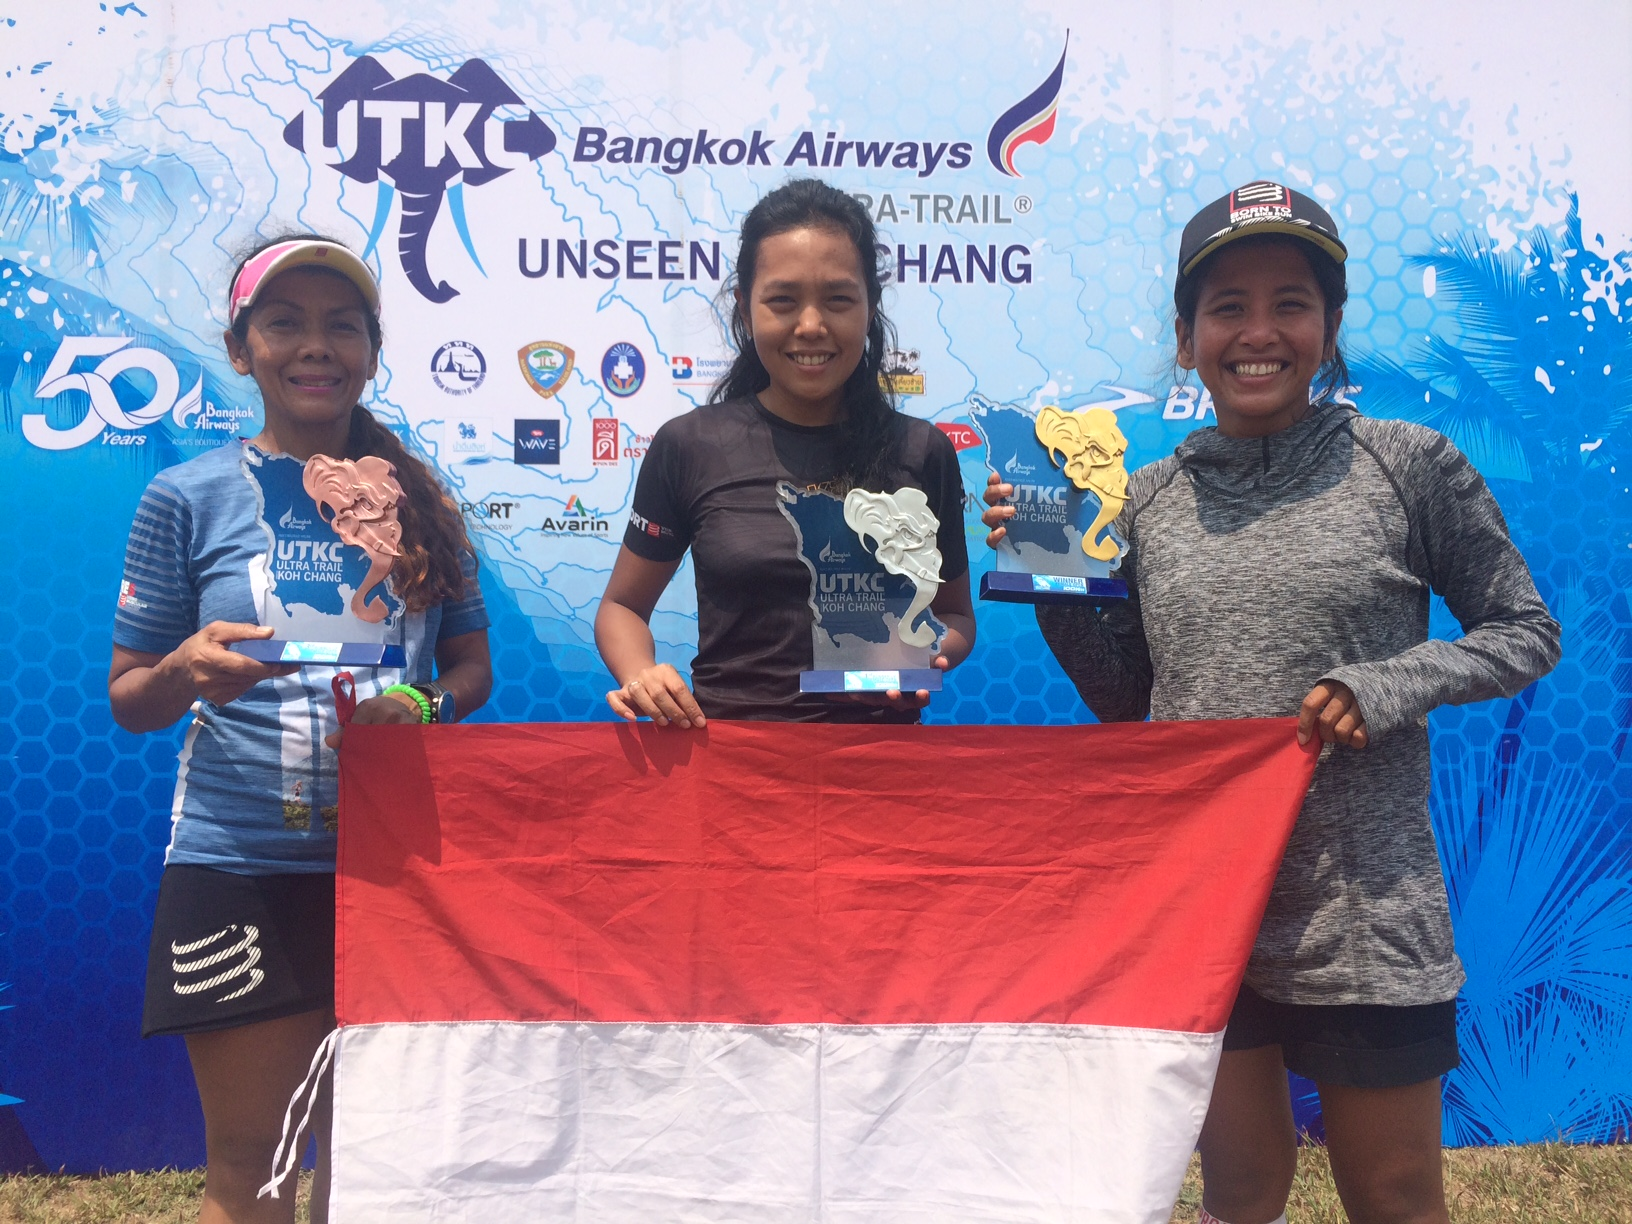 Indonesian women dominated the podium with Ruth Theresia as winner